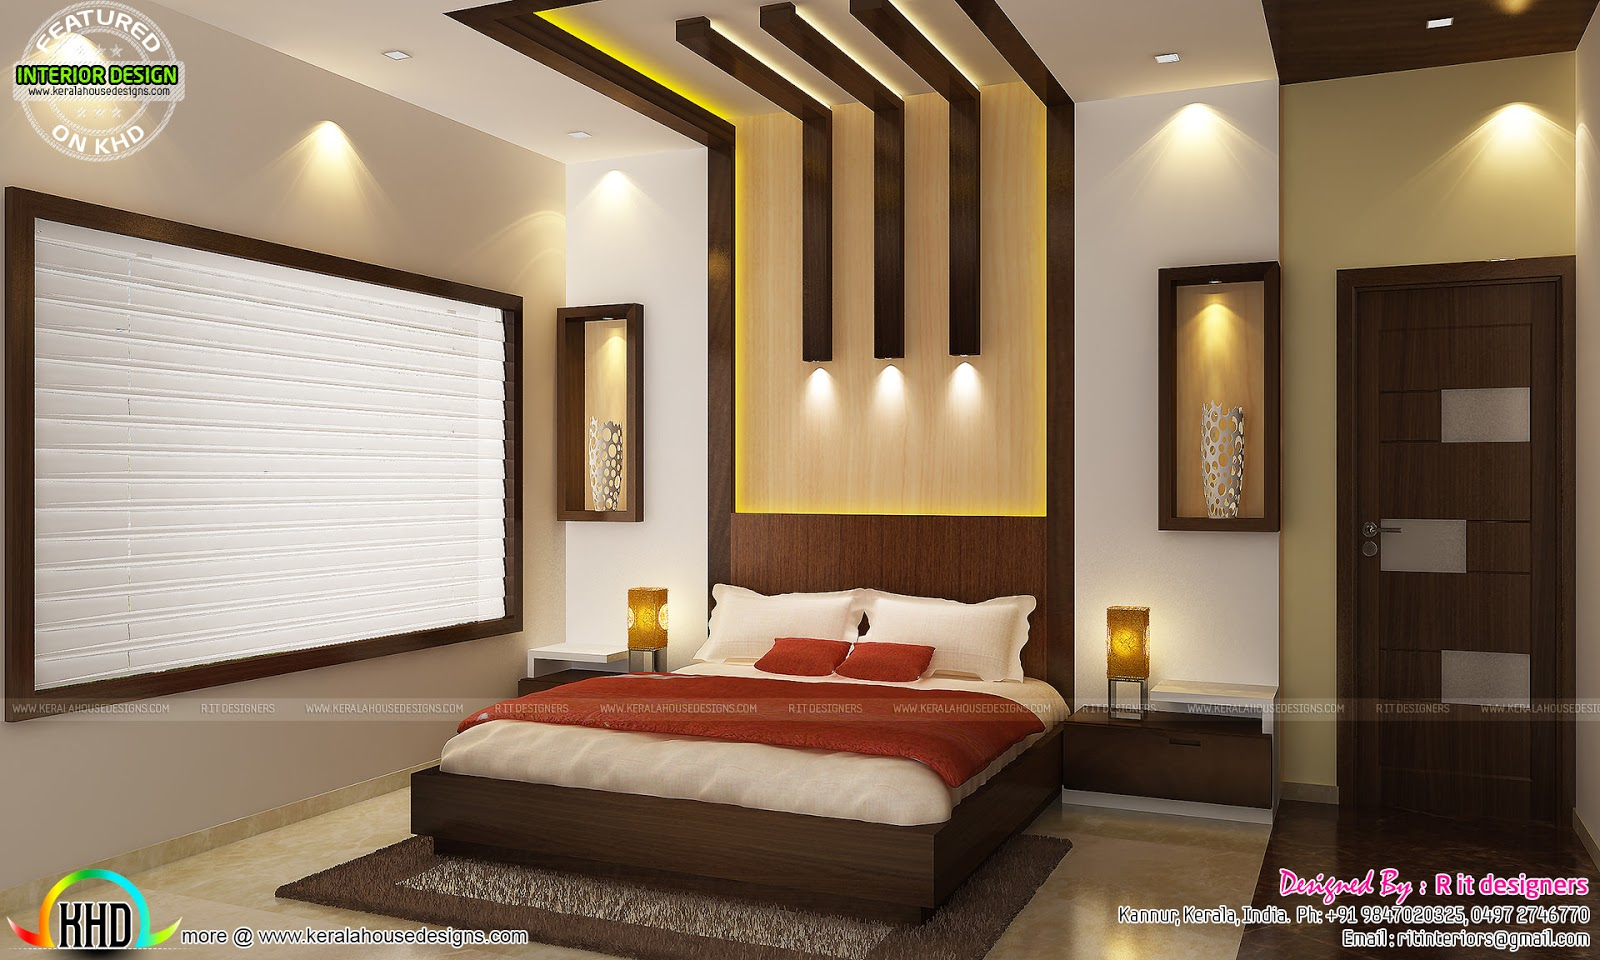 Kitchen living bedroom dining interior decor kerala for House interior design nagercoil